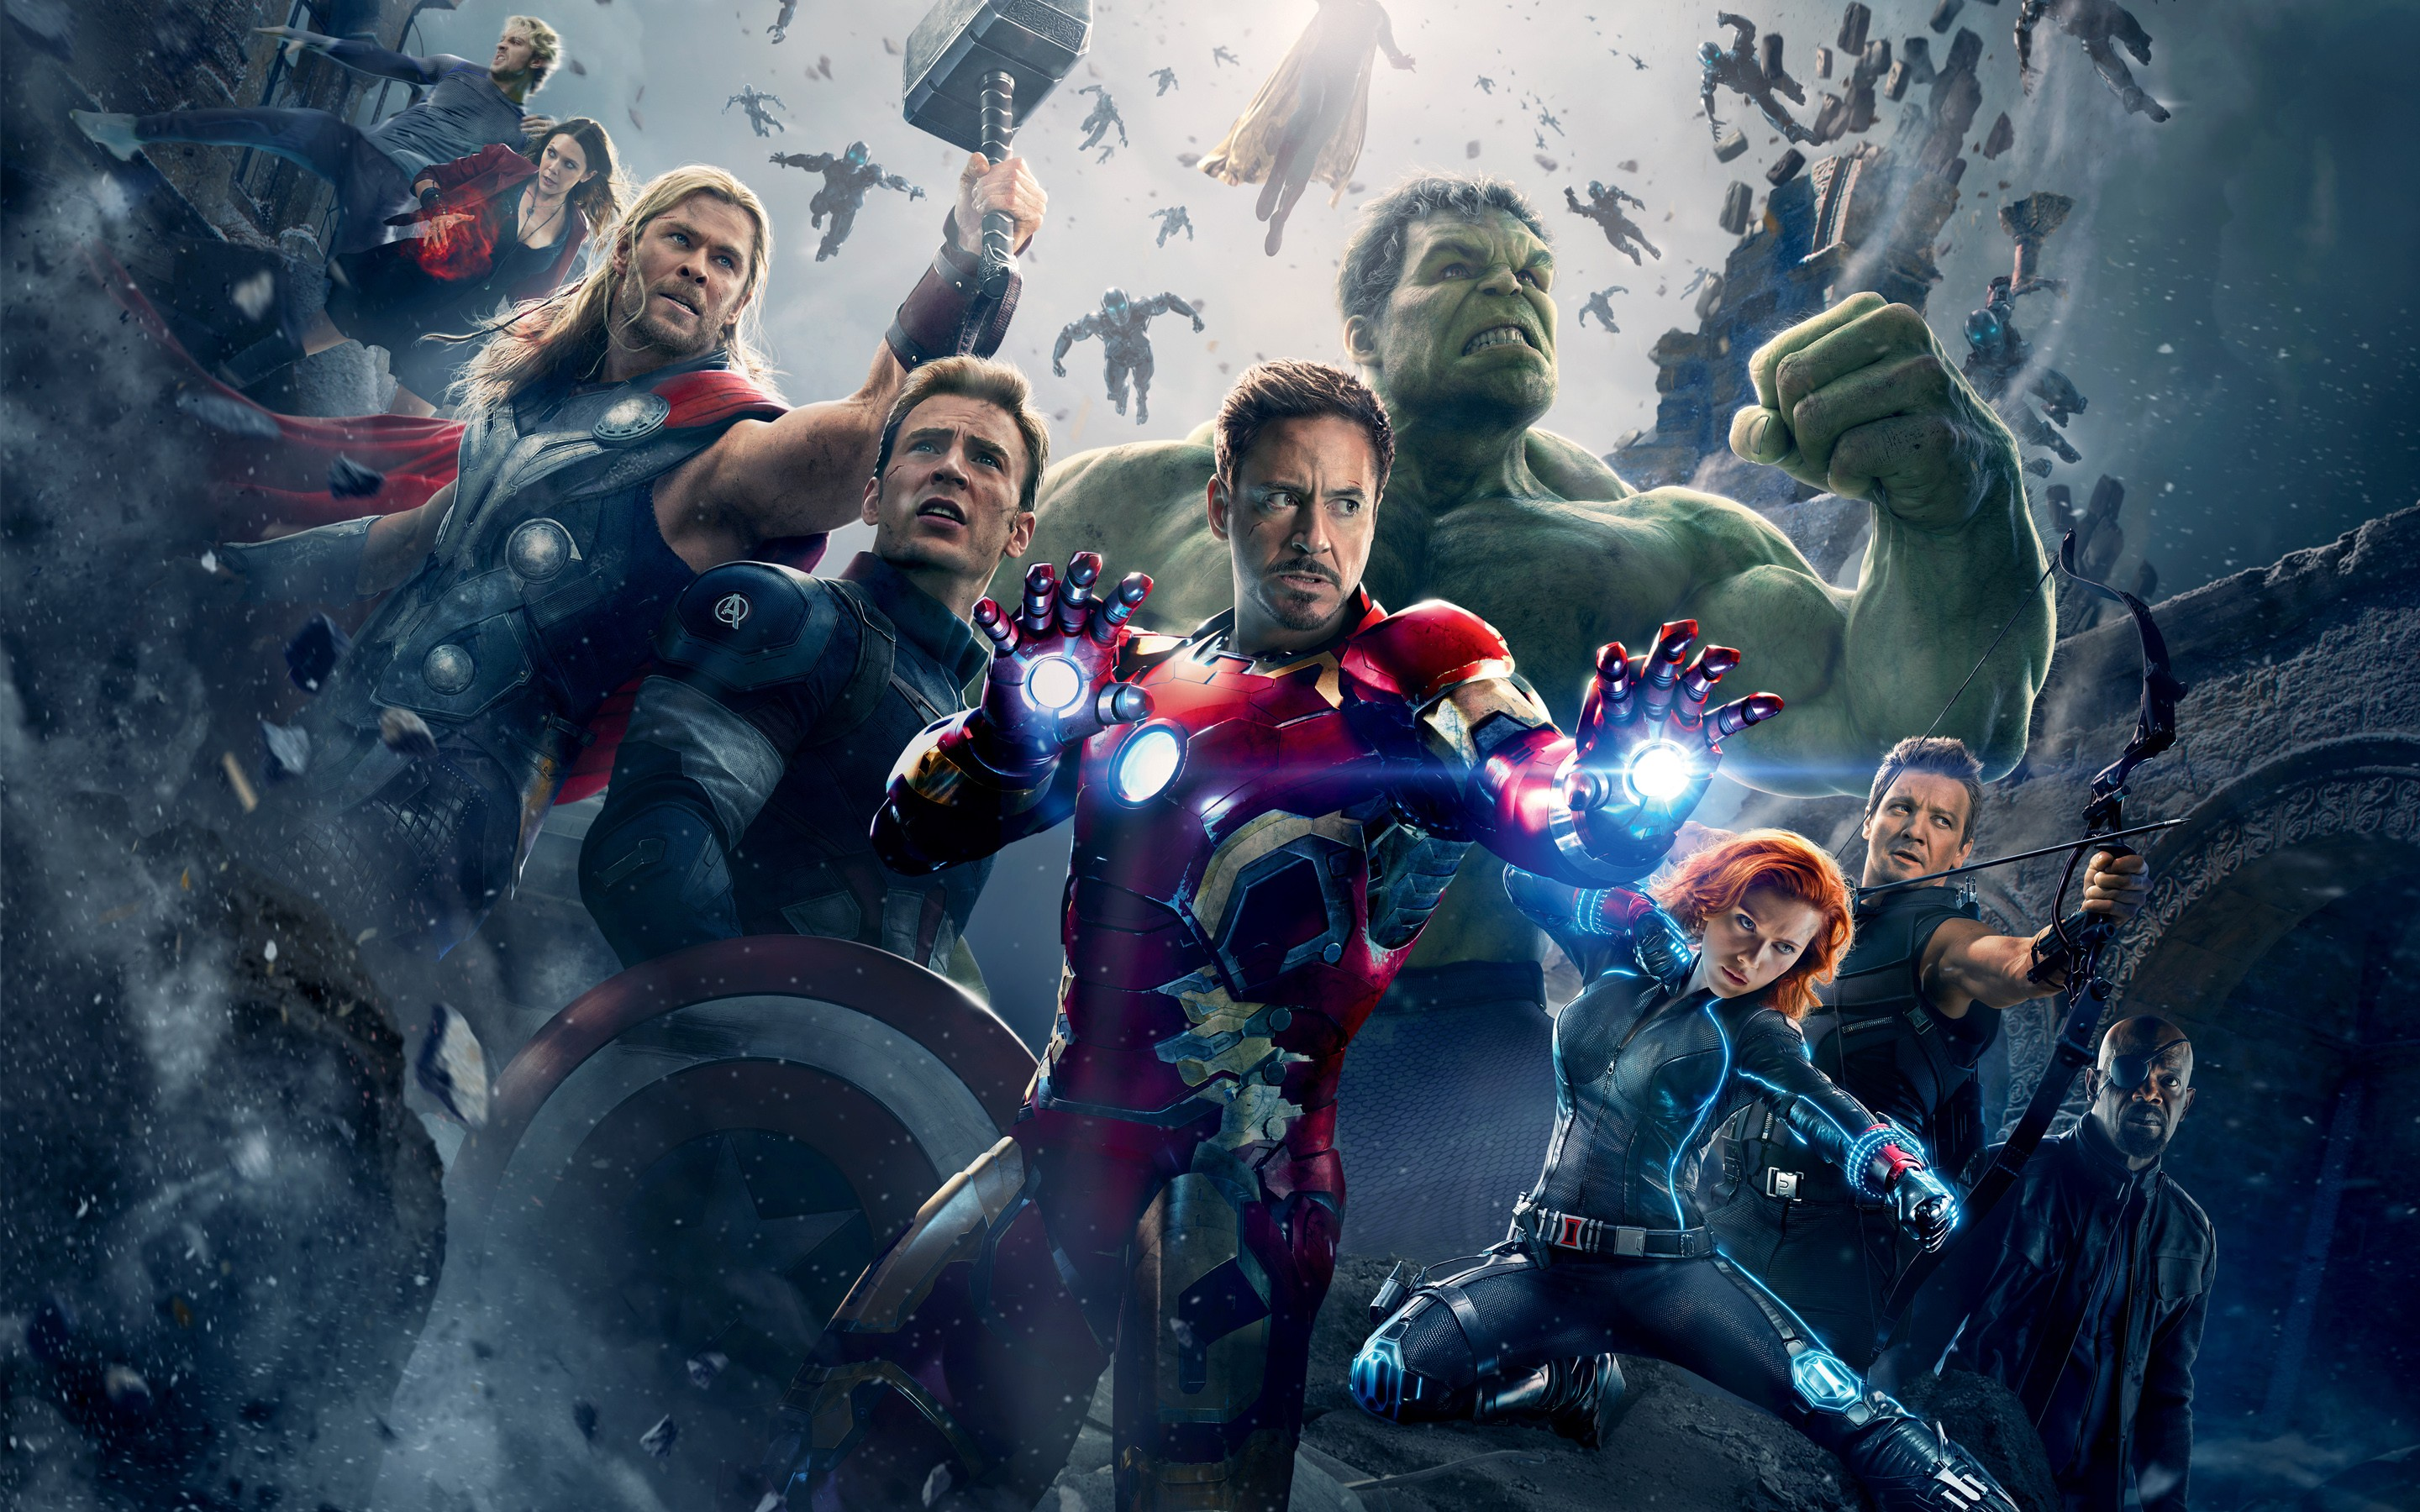 Avengers Age Of Ultron 3 Hd Movies 4k Wallpapers Images HD Wallpapers Download Free Images Wallpaper [1000image.com]